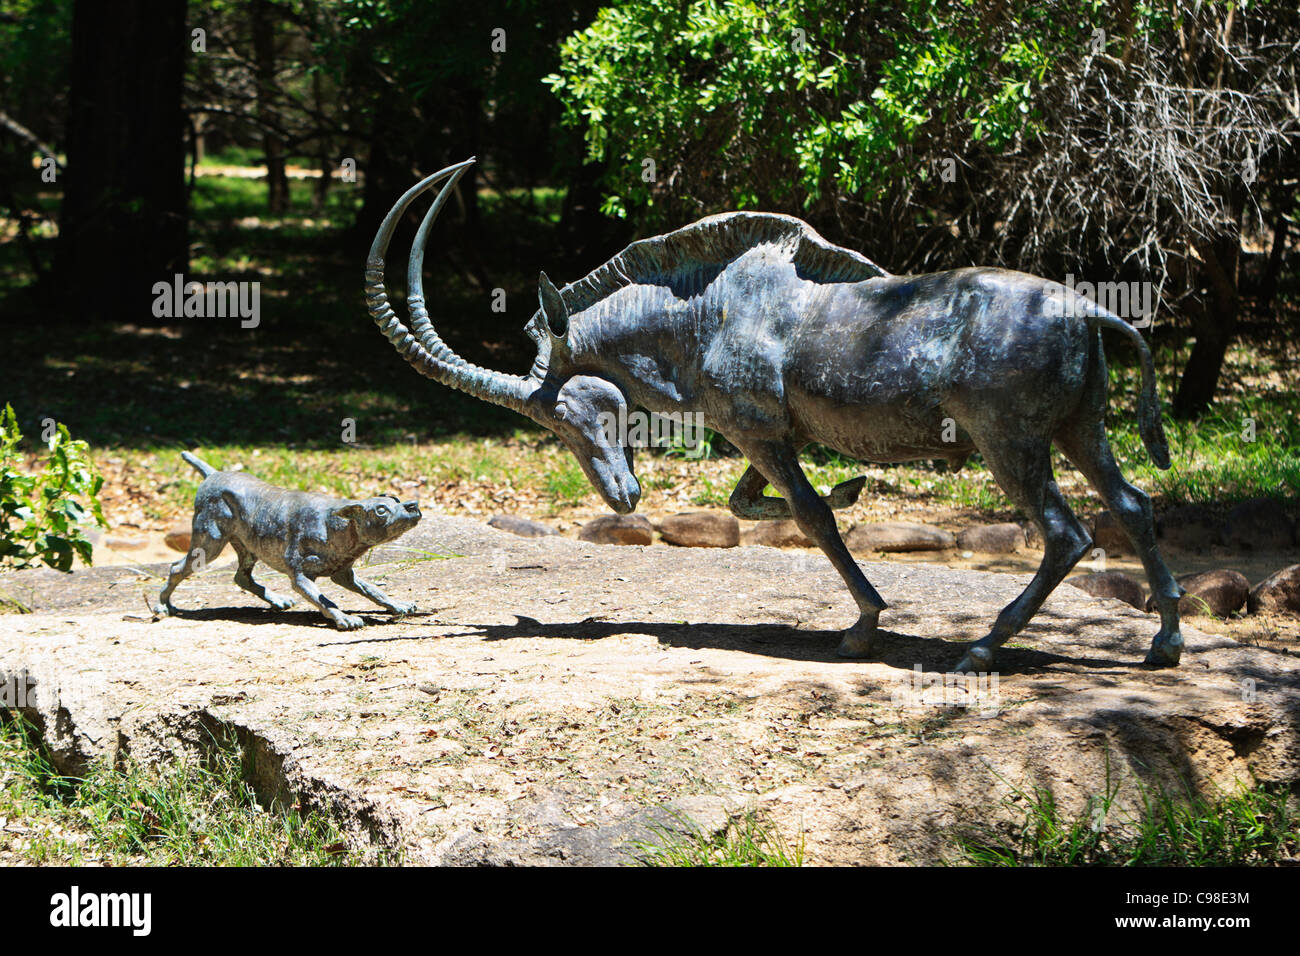 A bronze statue of the dog Jock of the Bushveld  engaging a roan antelope on display in the Jock of the Bushveld - Stock Image